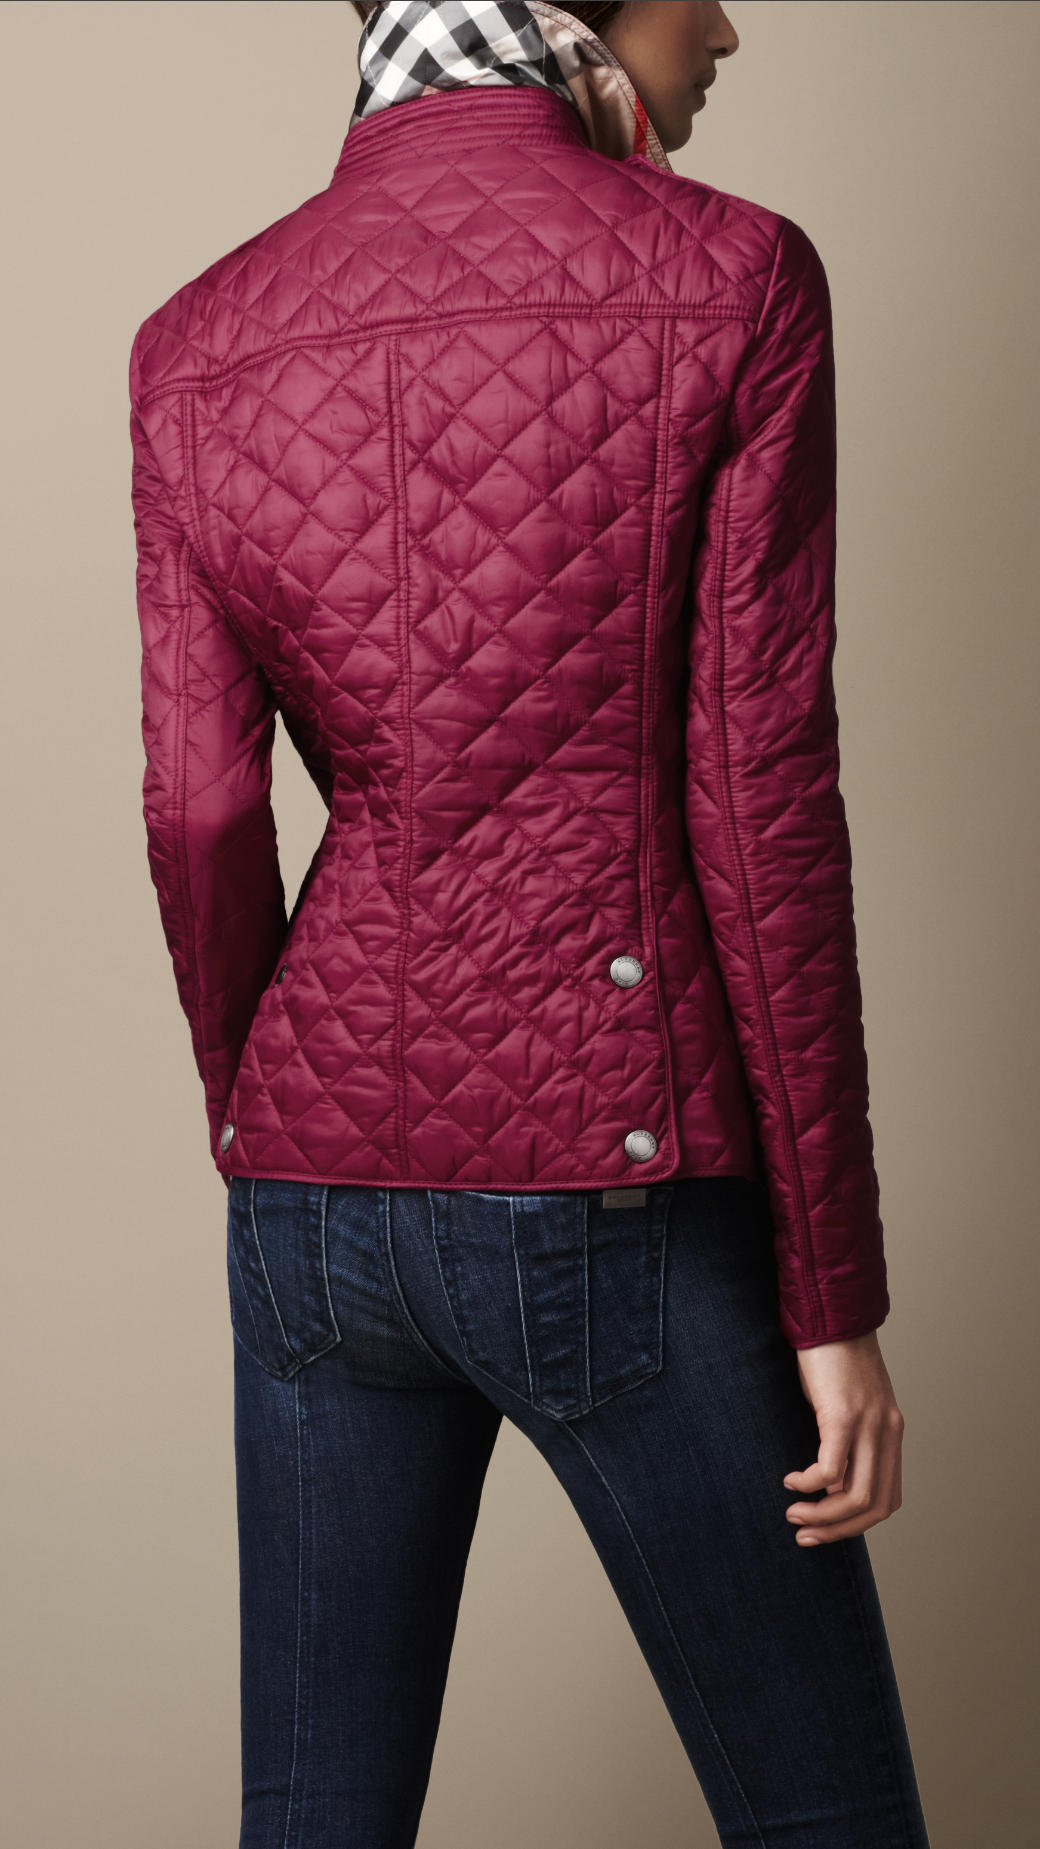 Best prices on Purple quilted cotton reversible jacket in Women's Jackets & Coats online. Visit Bizrate to find the best deals on top brands. Read reviews on Clothing & .